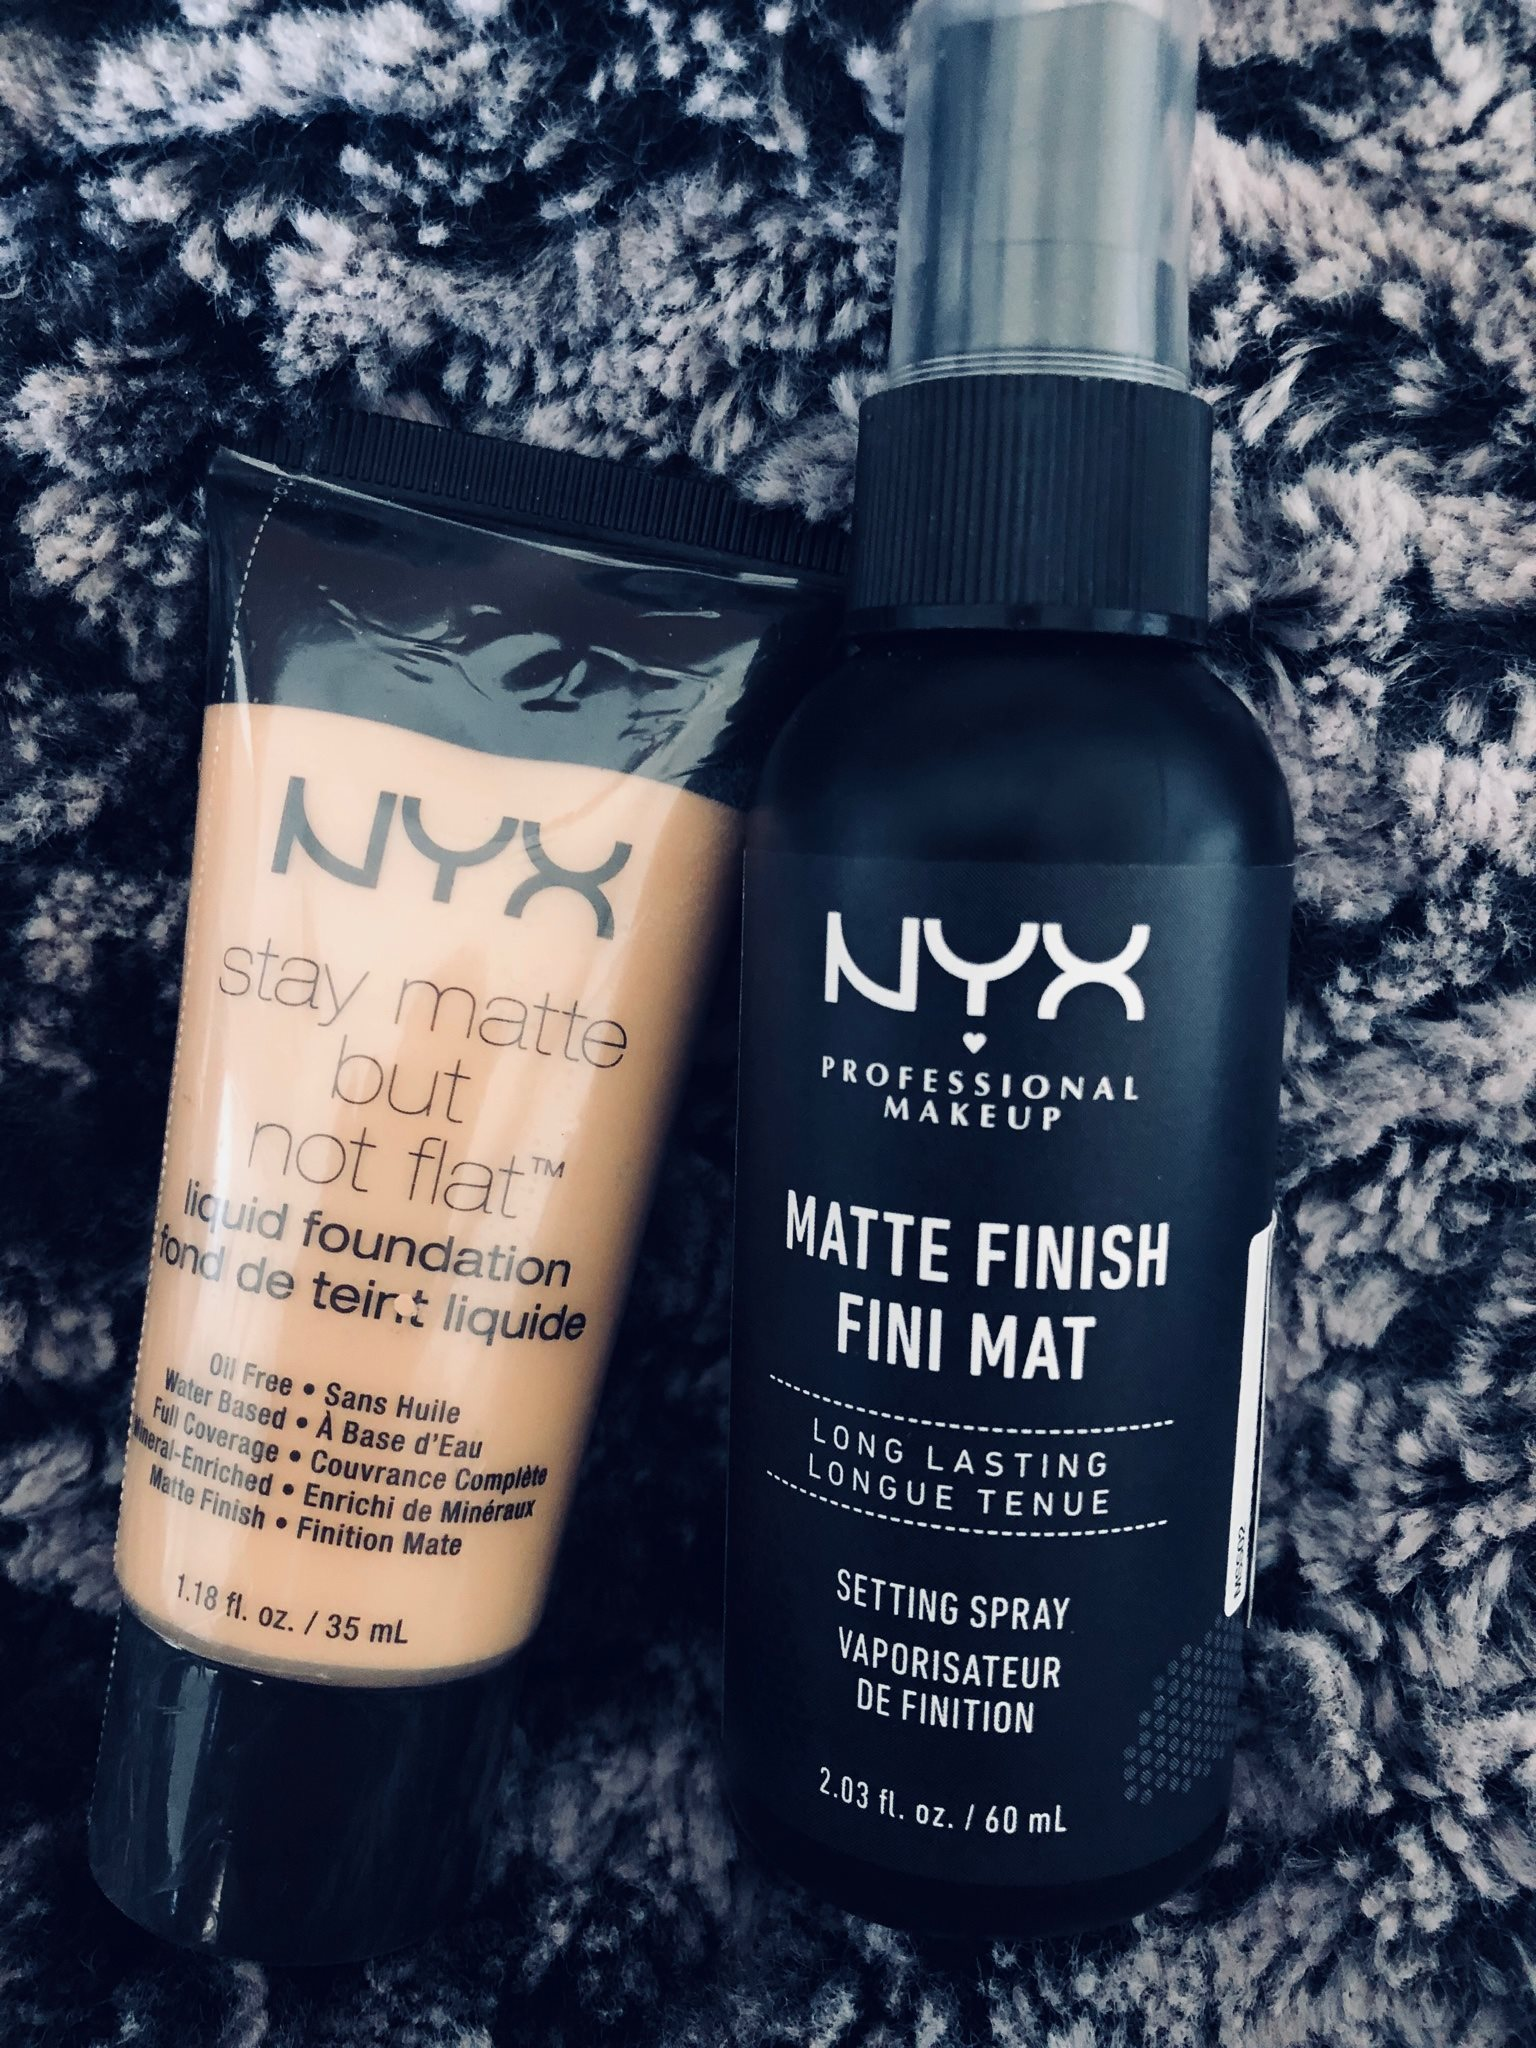 Foundation Source Best Nyx Matte Finish Makeup Setting Spray Review Makeupalley Image